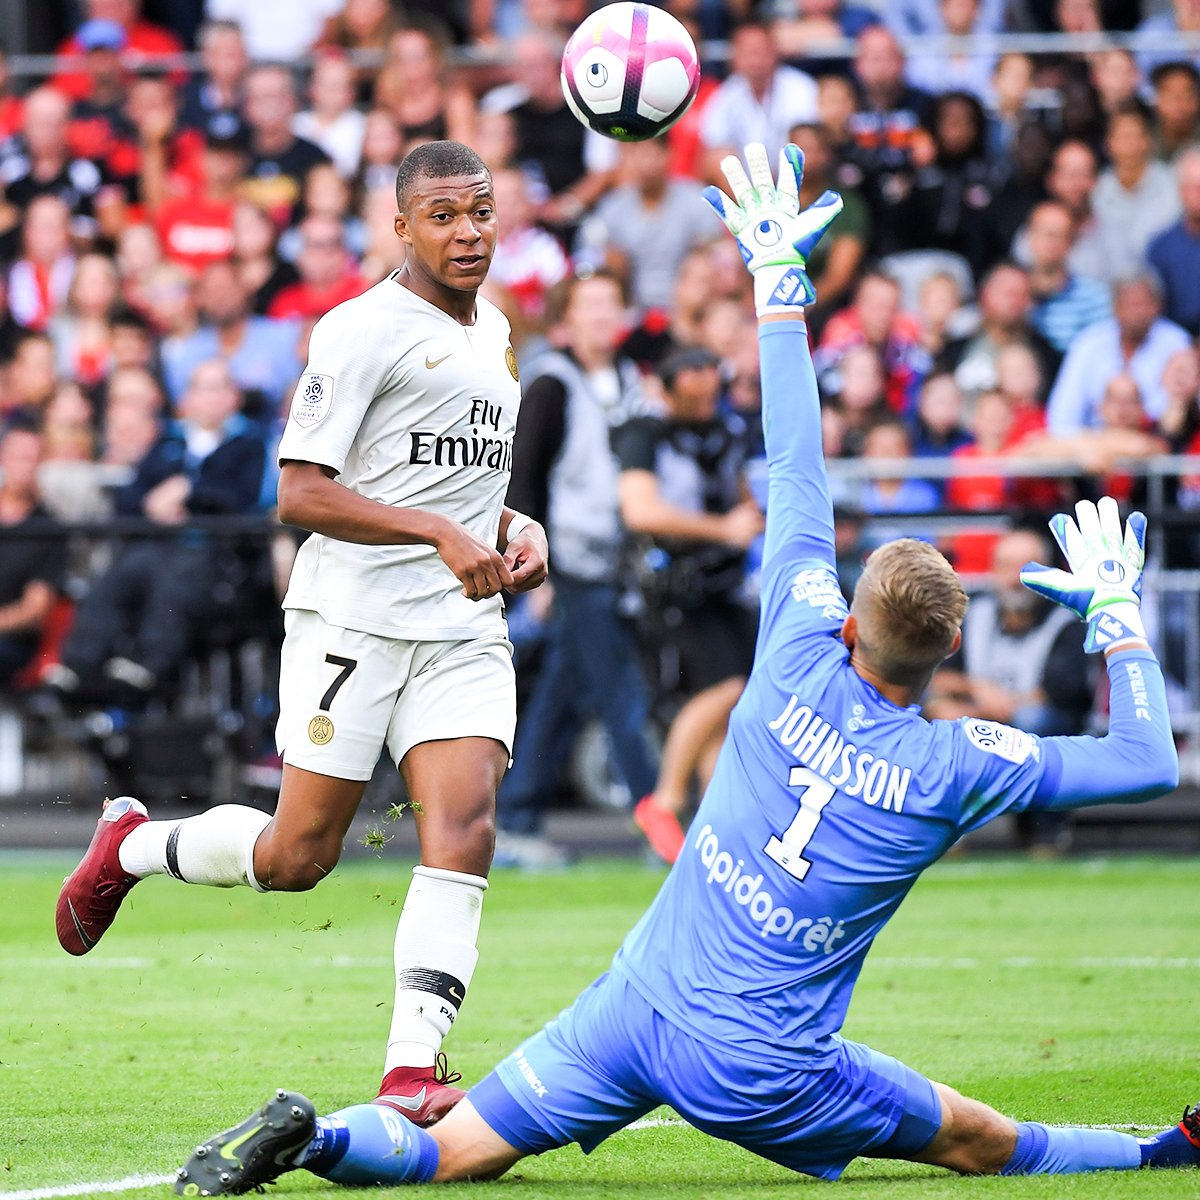 HT: Subbed on with PSG 1-0 down 82&#39;: Scores to make it 2-1 90&#39;: Scores to make it 3-1  @KMbappe bringing that World Cup form back to PSG  <br>http://pic.twitter.com/zL9GPPBA8g